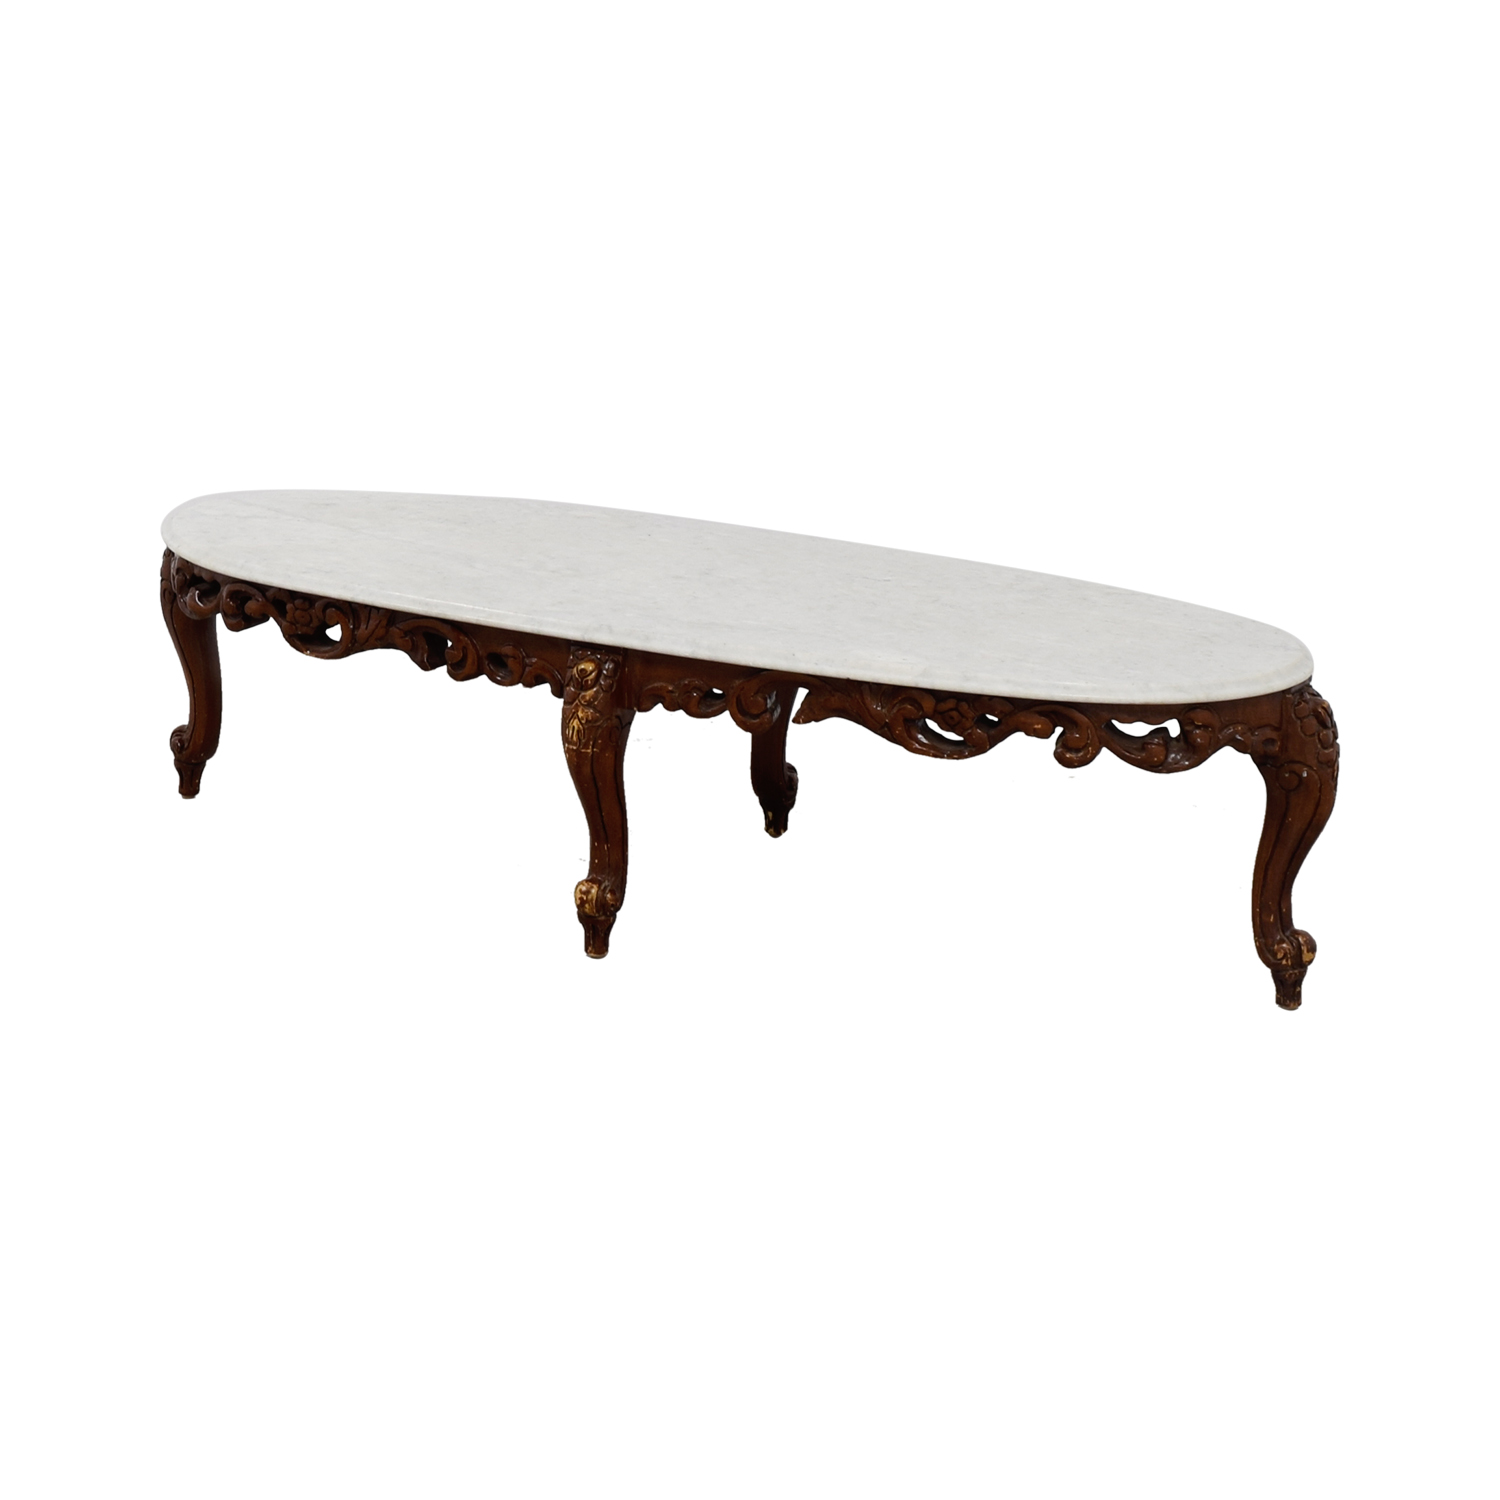 Buy Online Marble Top Coffee Table: Marble Top And Wood Base Coffee Table / Tables